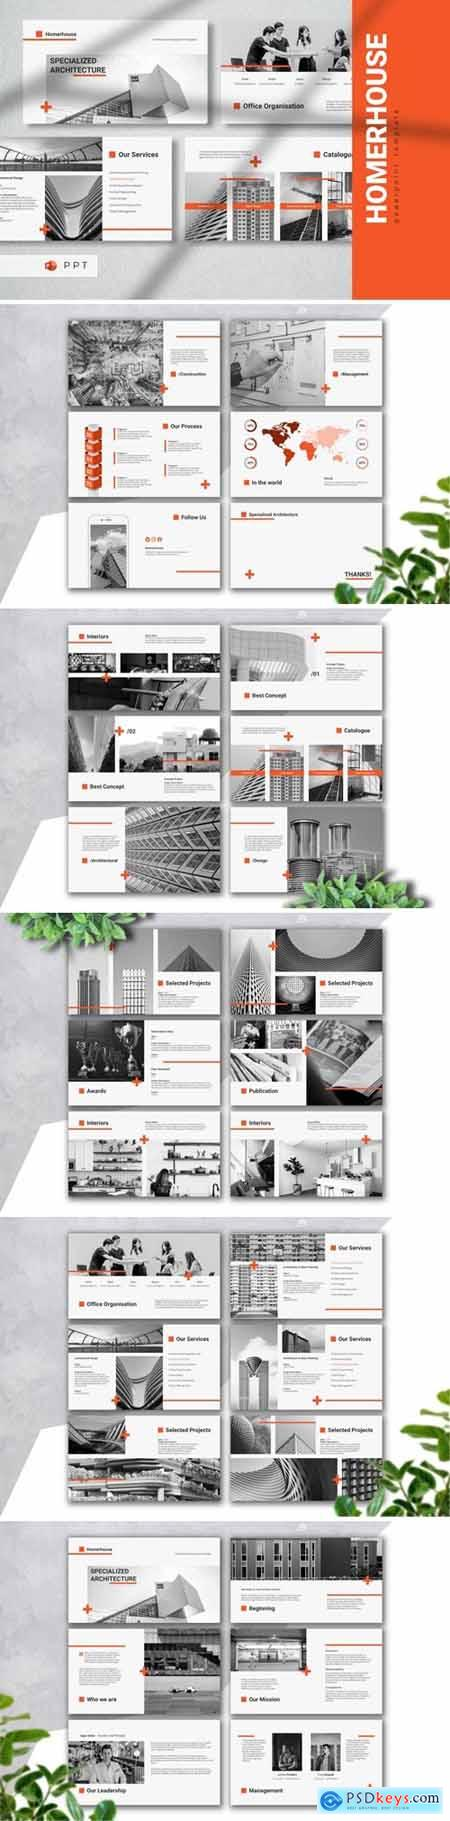 HOMERHOUSE - Architecture Powerpoint, Keynote and Google Slides Templates